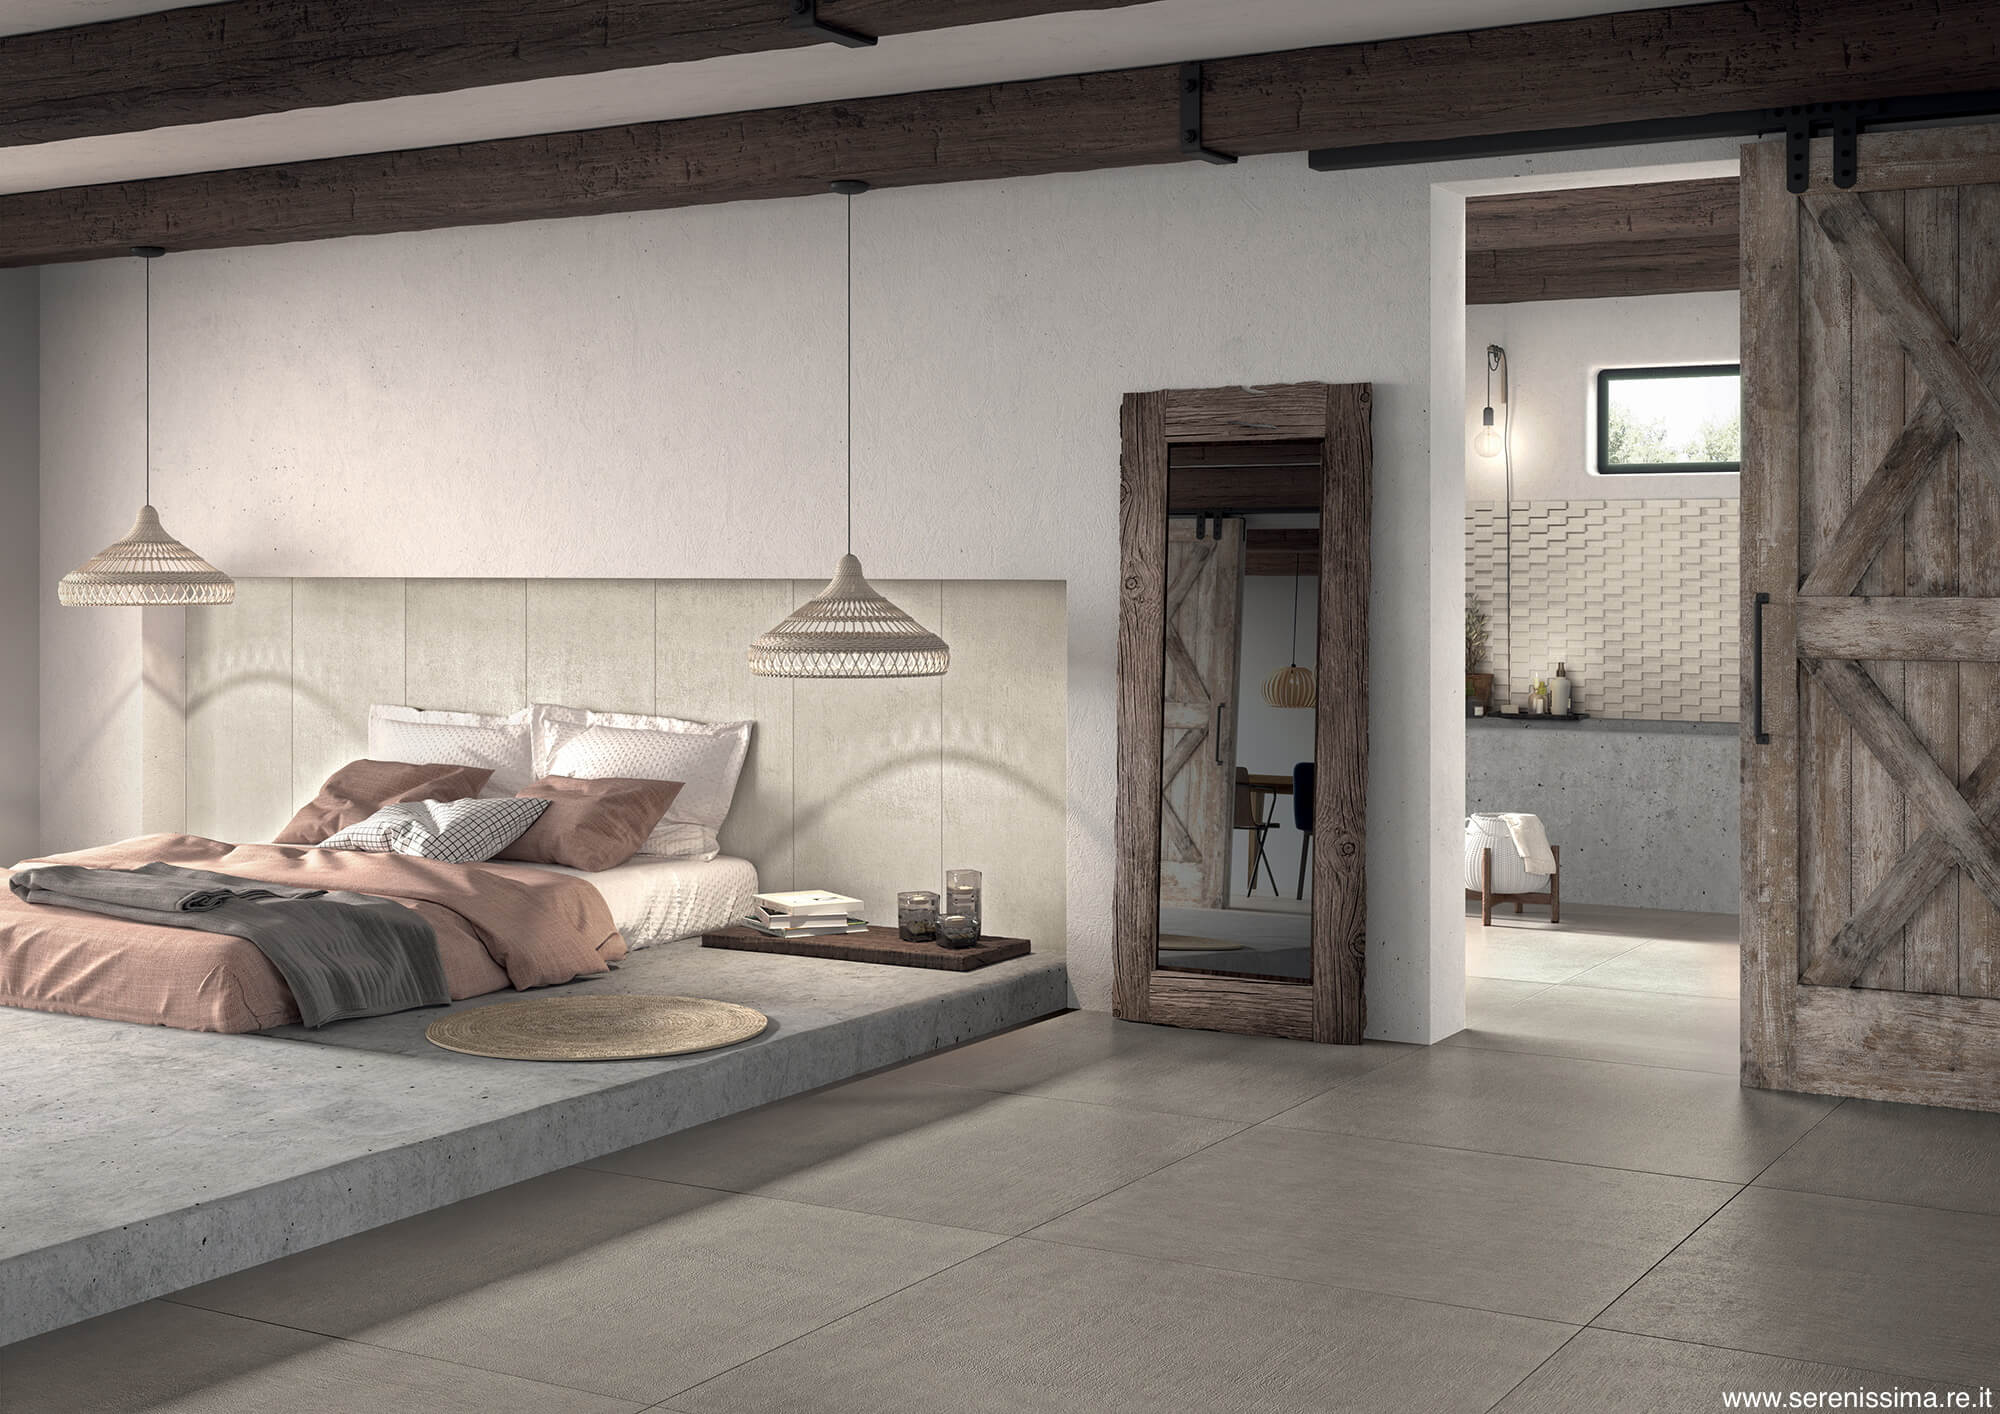 Buy Deliver Italian Tiles in Sri Lanka by Idel